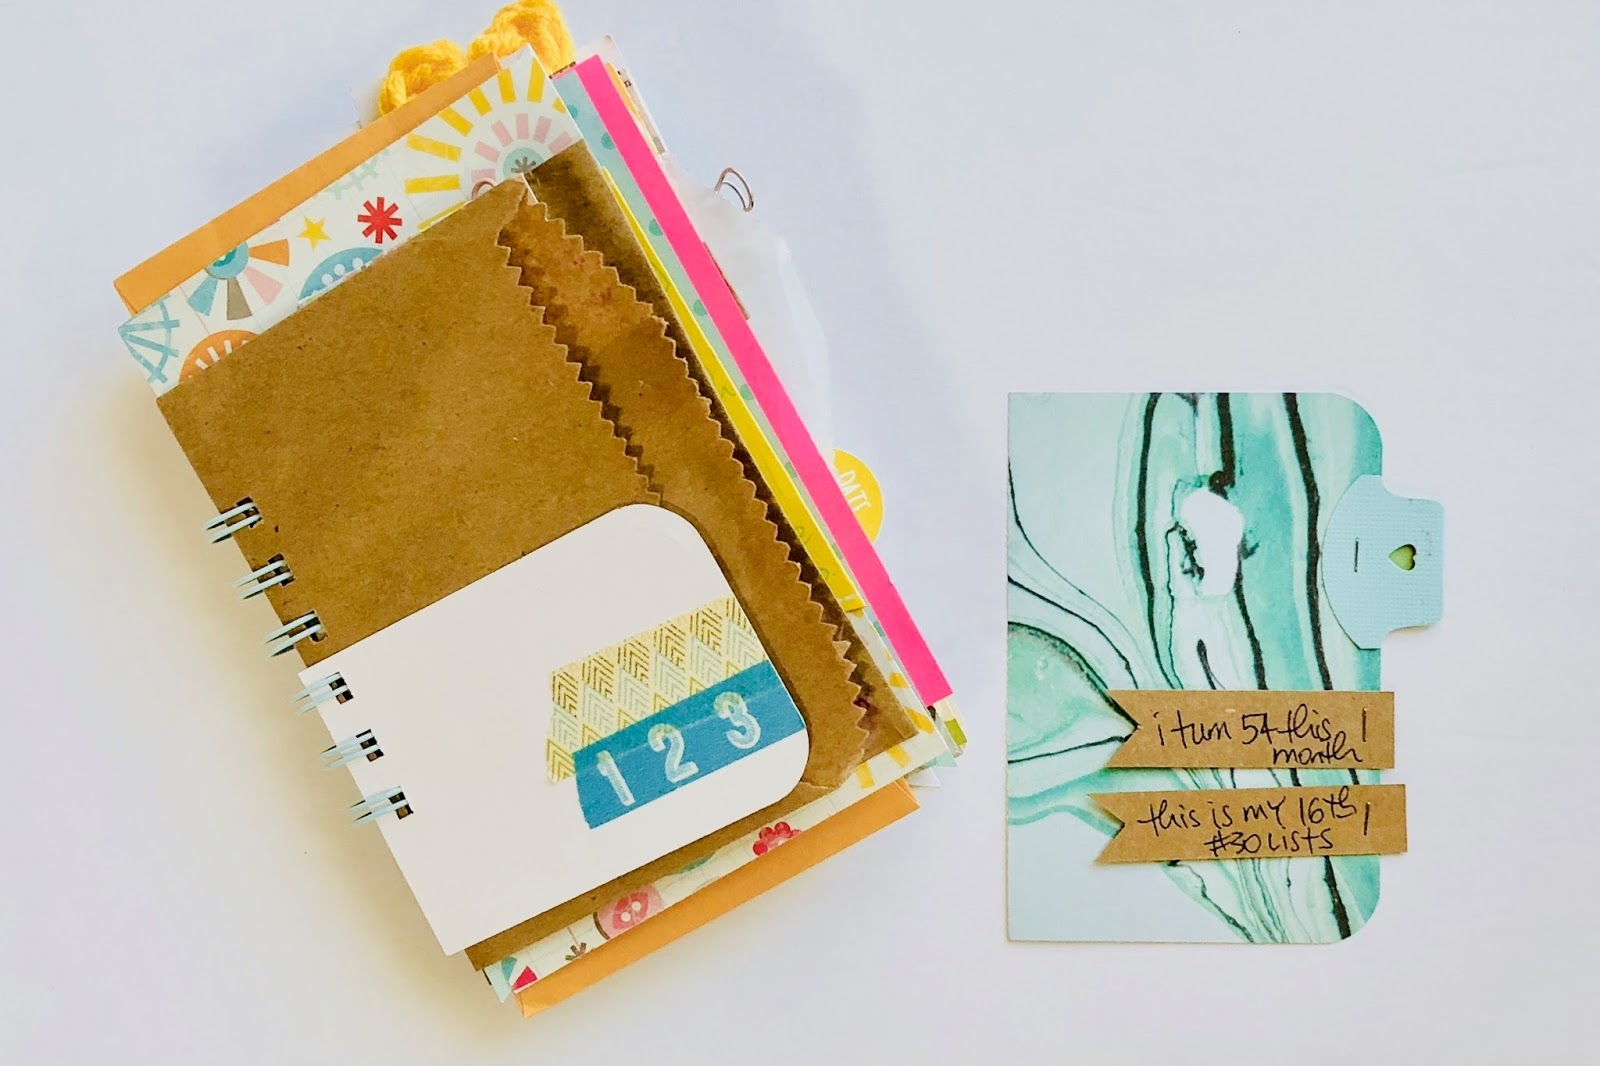 #30 Days of Lists #30lists #list journal #mini book #junk journal #mixed paper journal #listmaker #right now